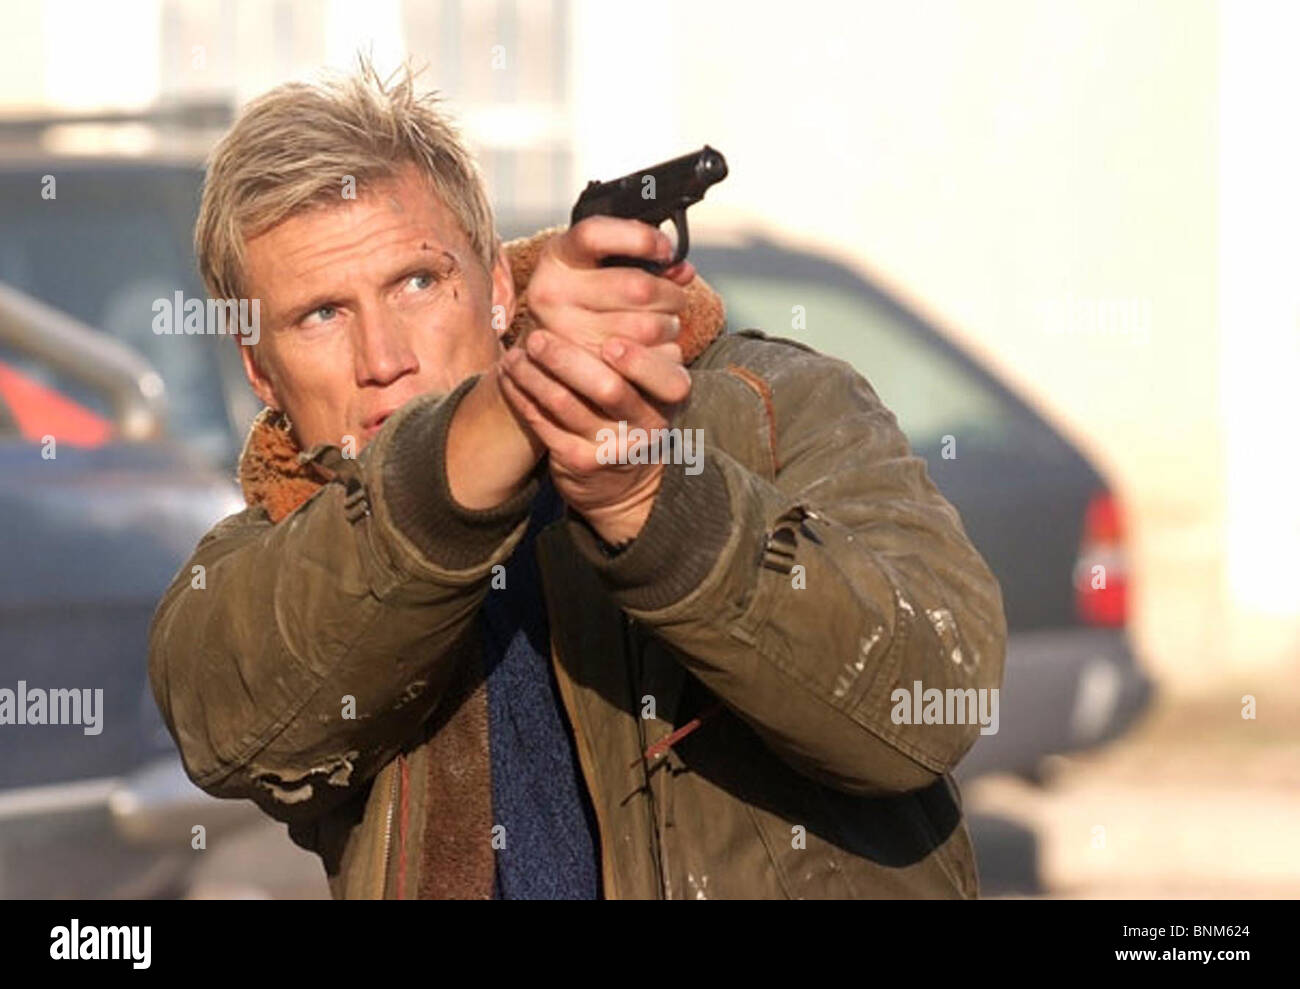 DIRECT CONTACT (2009) DOLPH LUNDGREN DANNY LERNER (DIR) 001 MOVIESTORE COLLECTION LTD - Stock Image